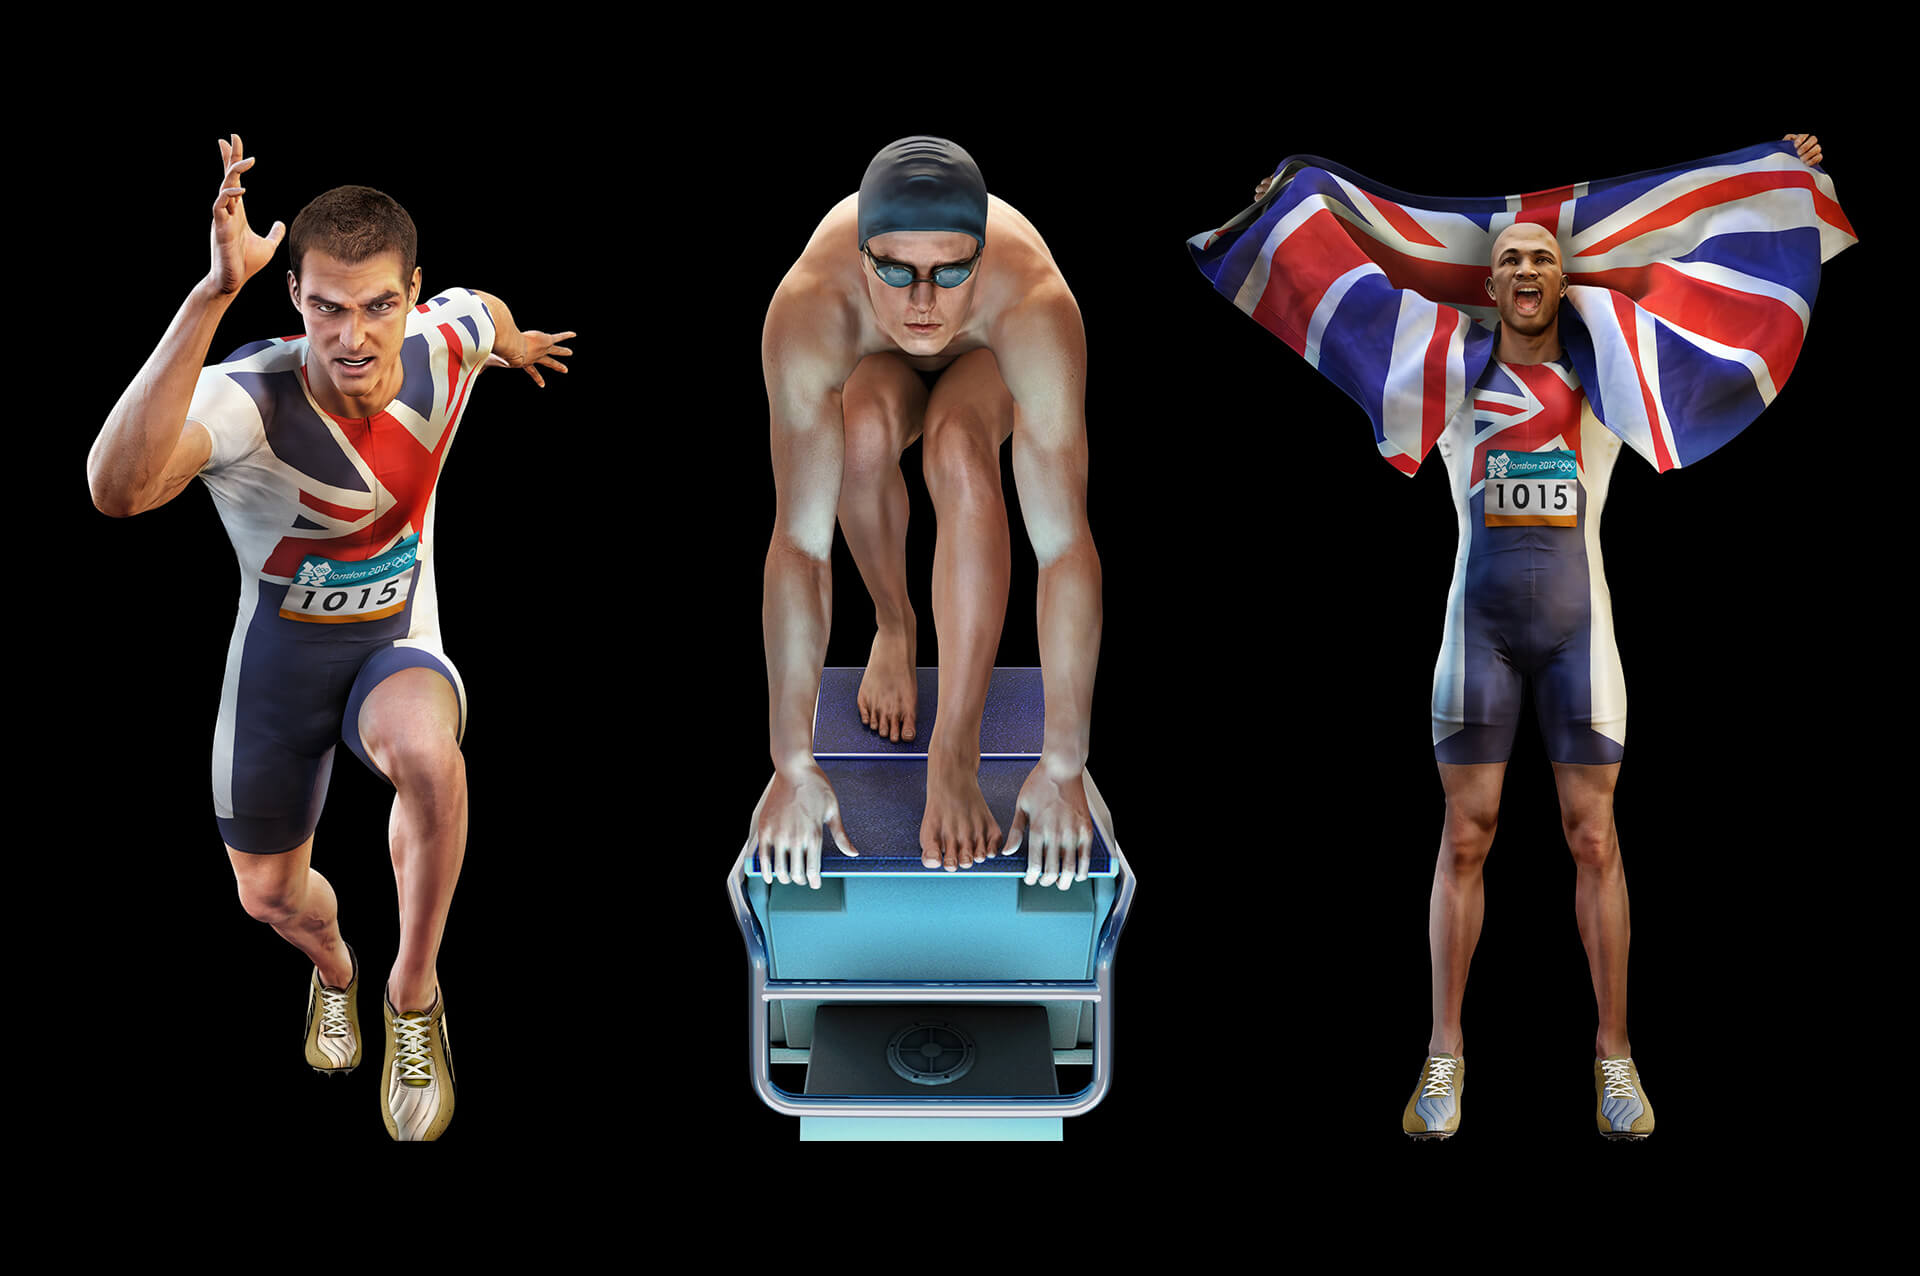 3d models of cg athletes rendered in 3dsmax to be used on video game pack art